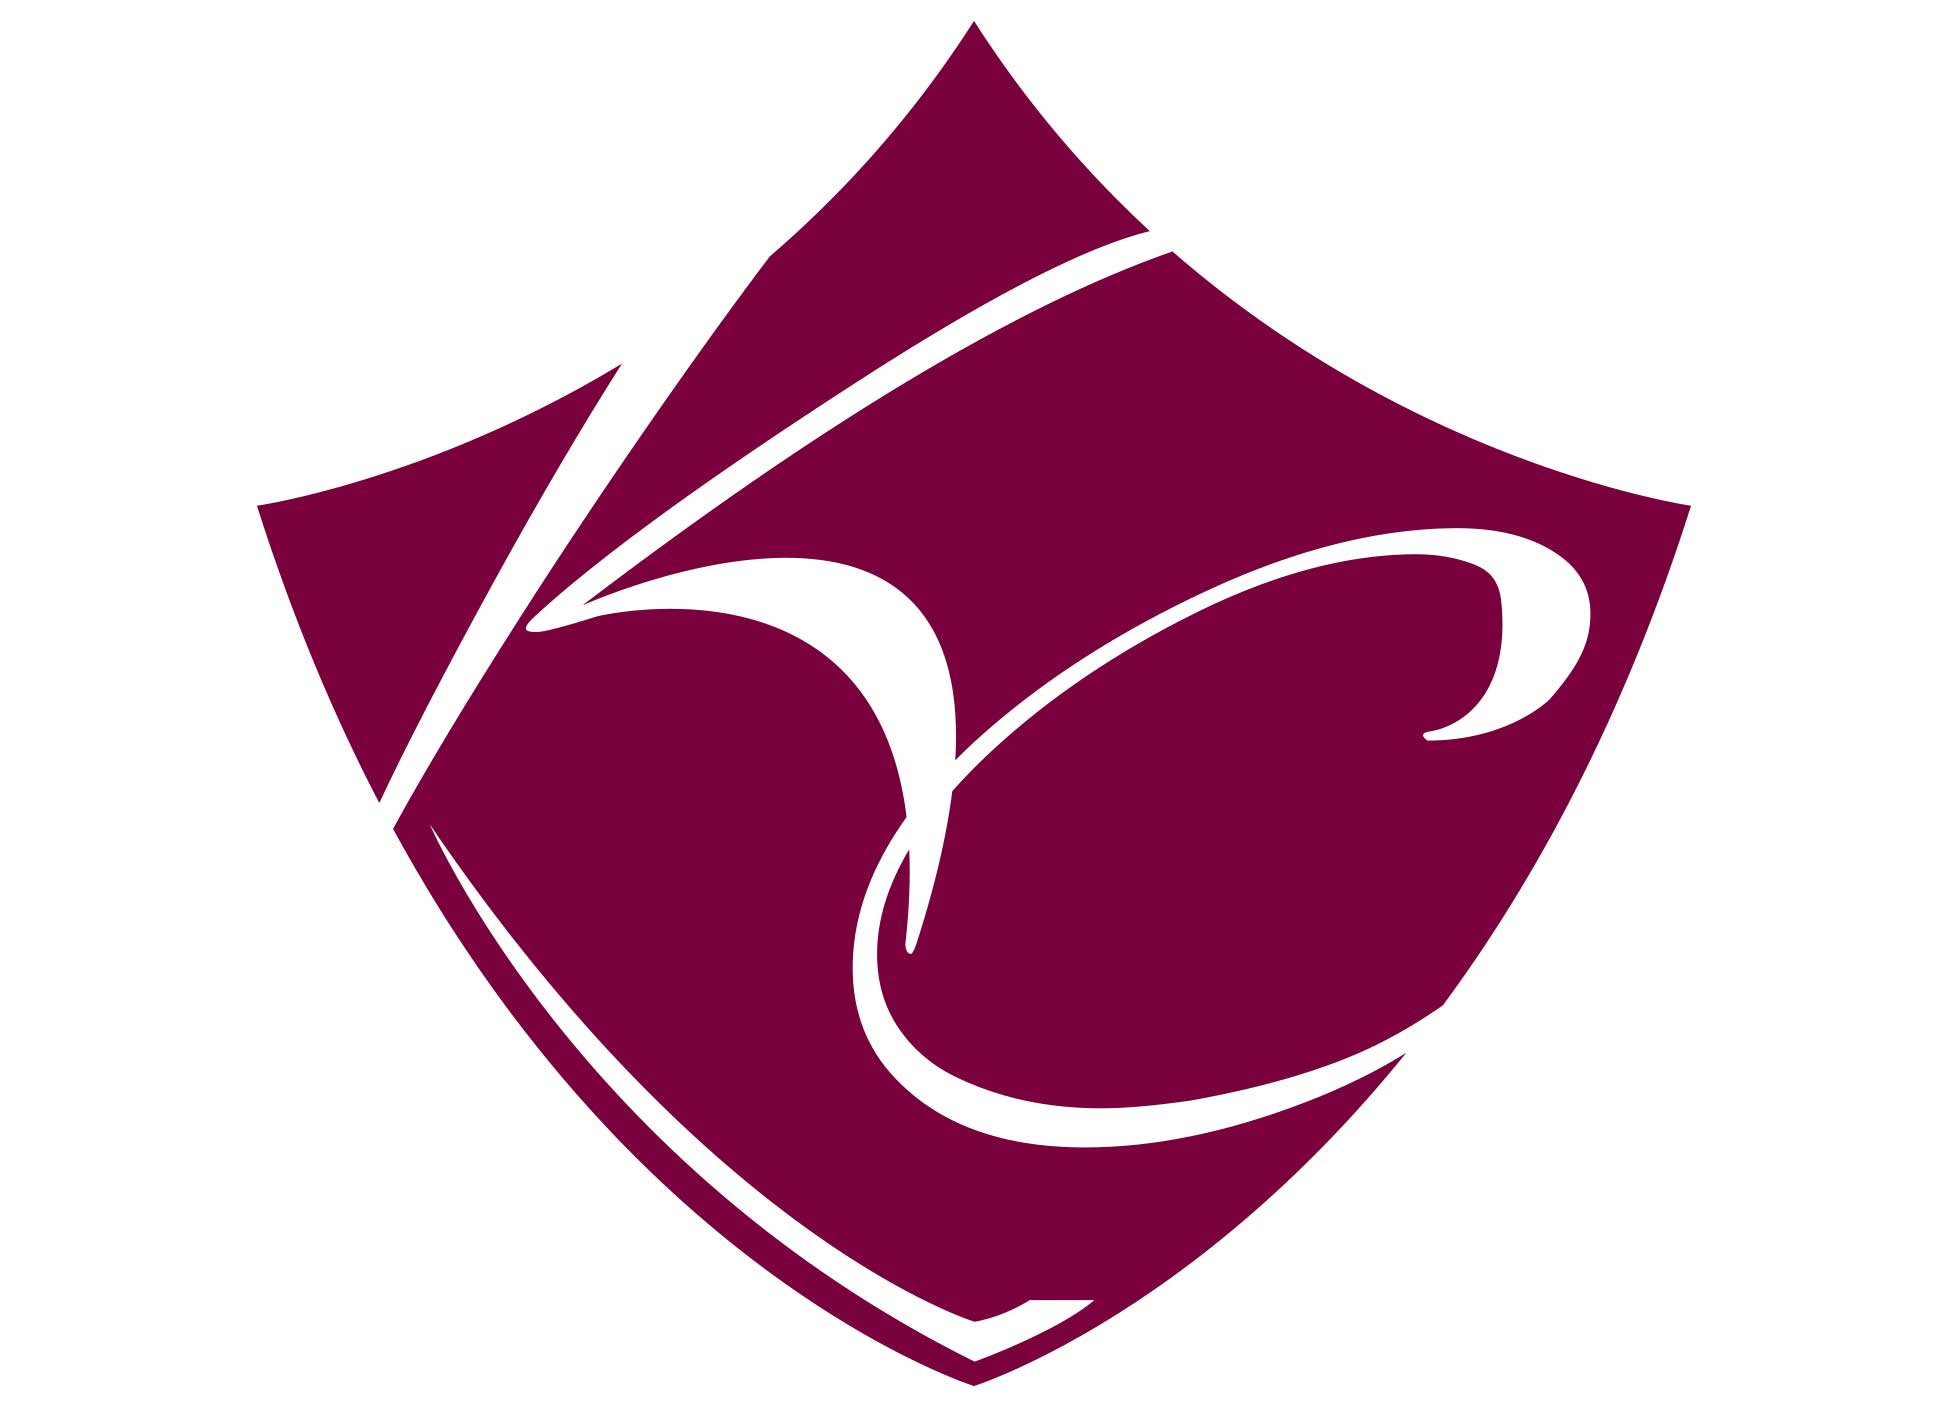 Image of logo created for Kimberly A. Crocetta Attorney at Law in Saratoga Springs, New York.